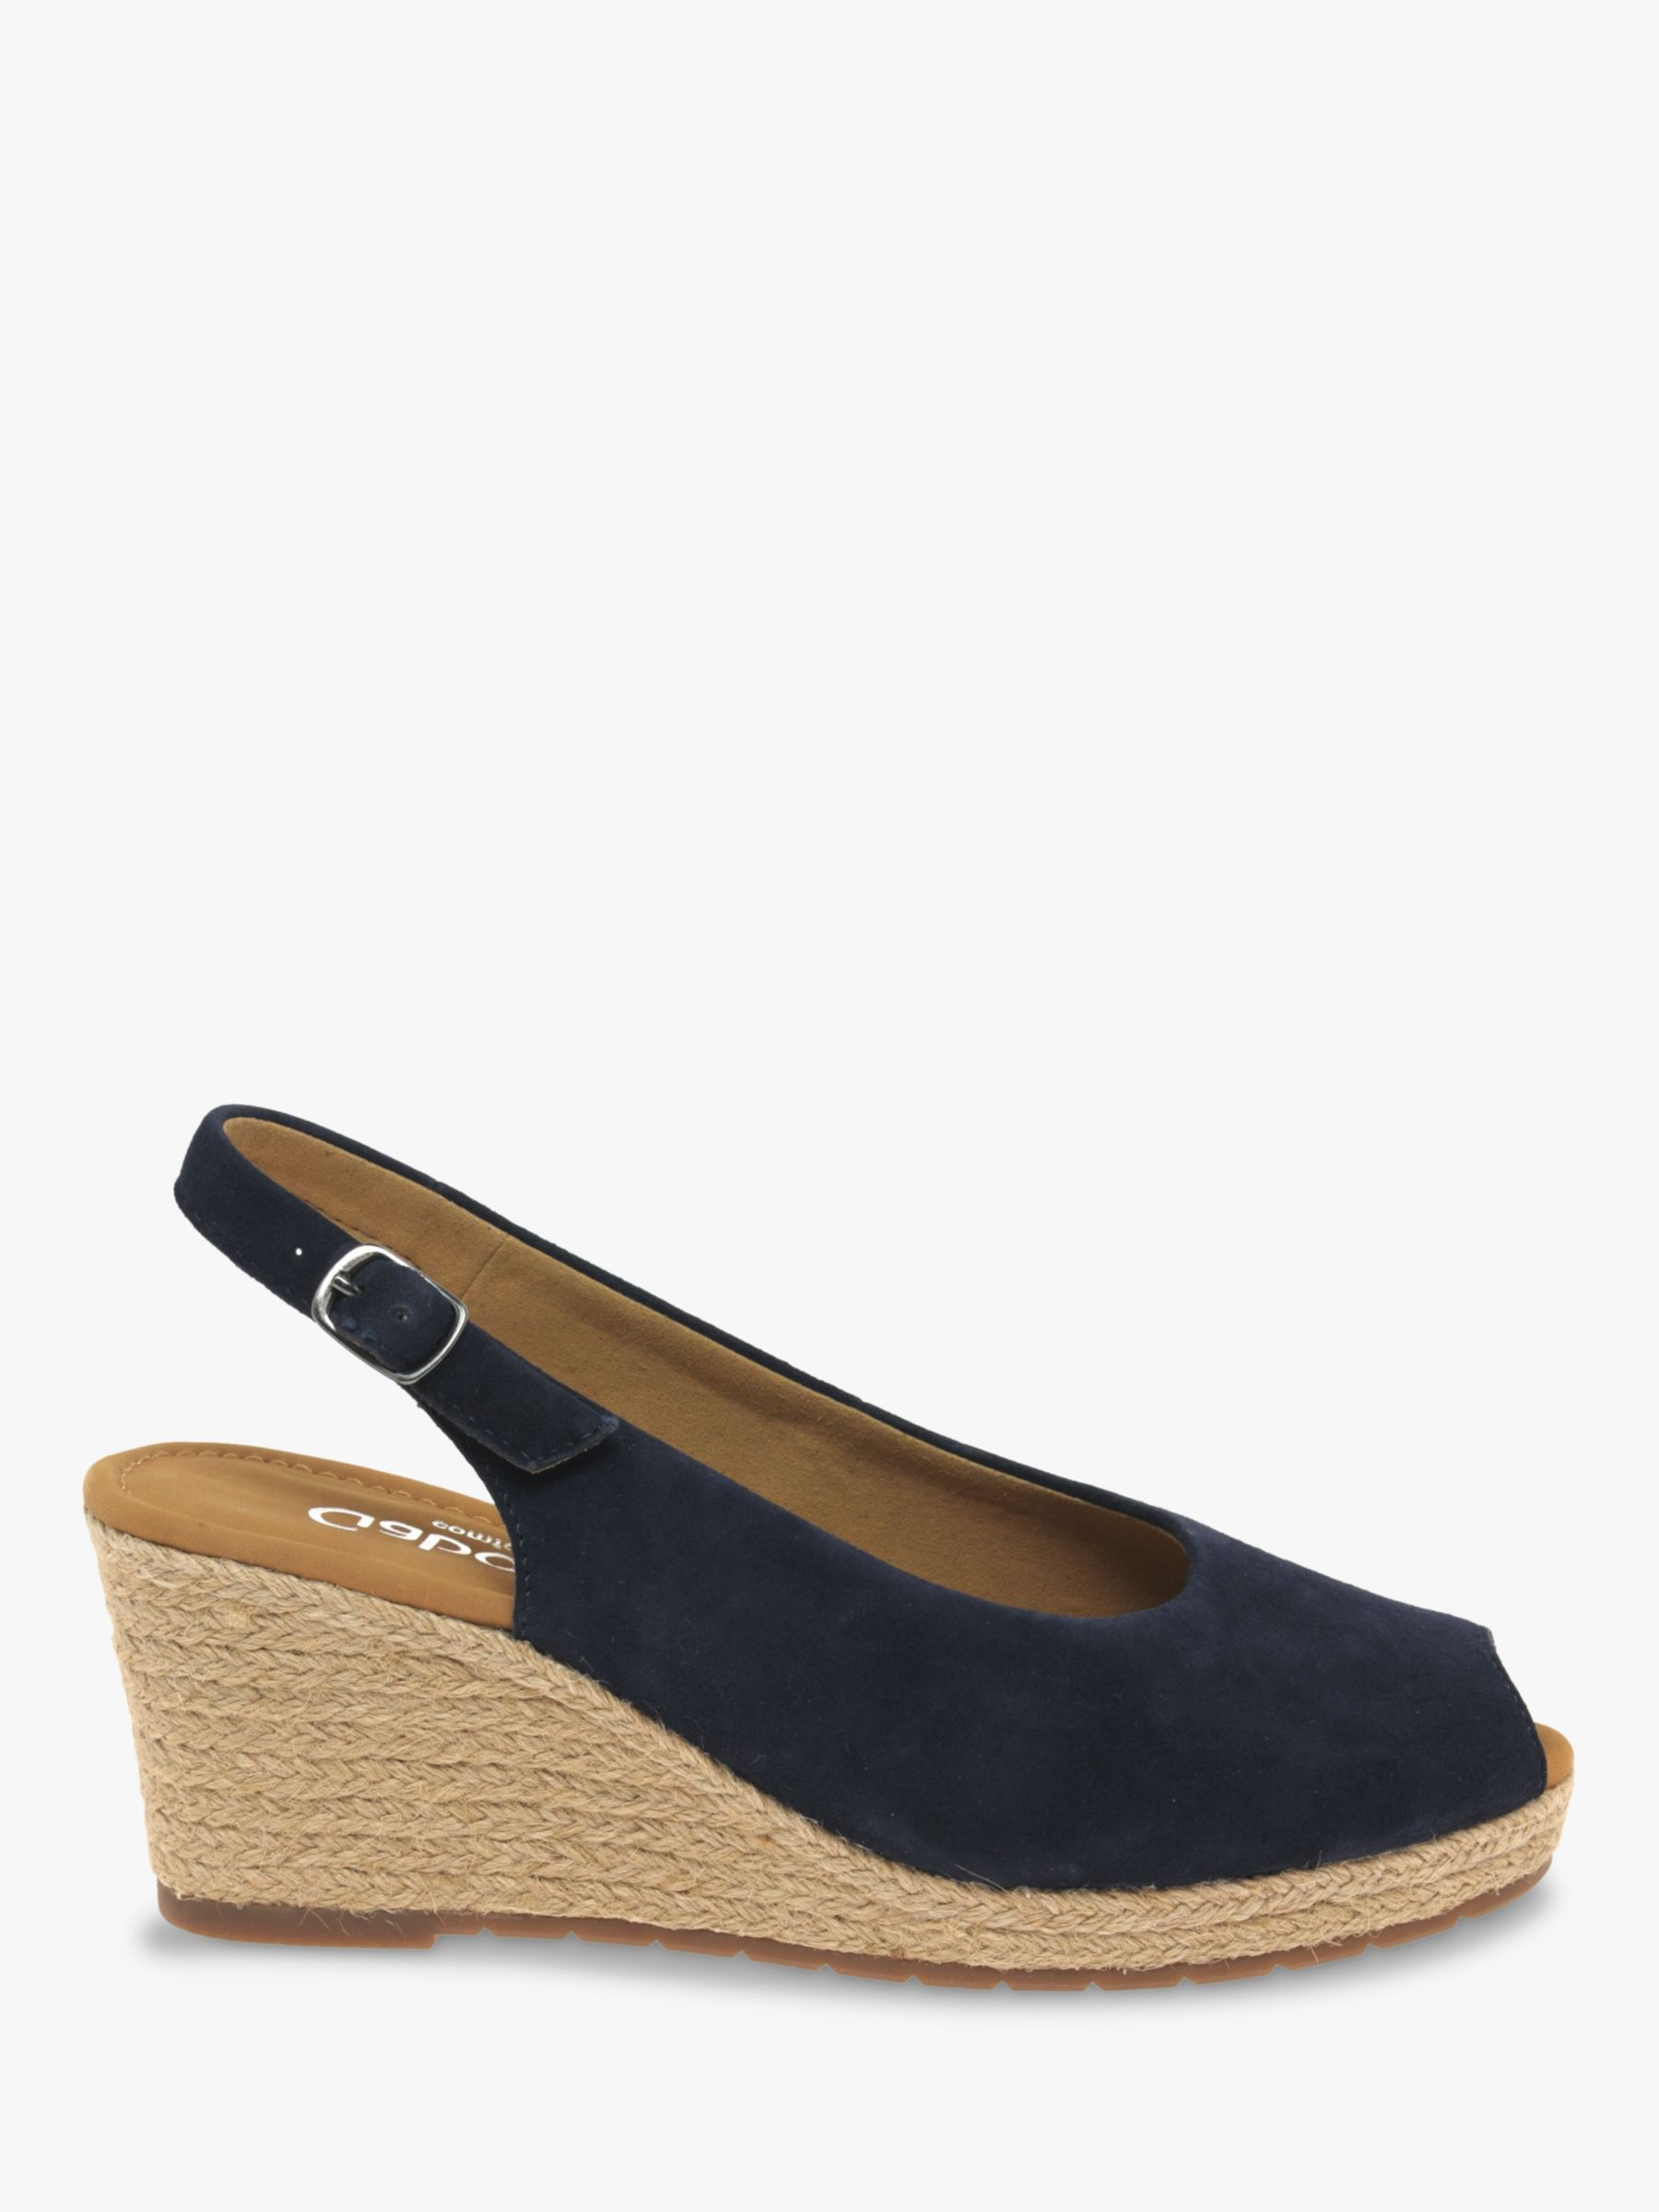 Gabor Gabor Tandy Suede Wide Slingback Sandals, Navy